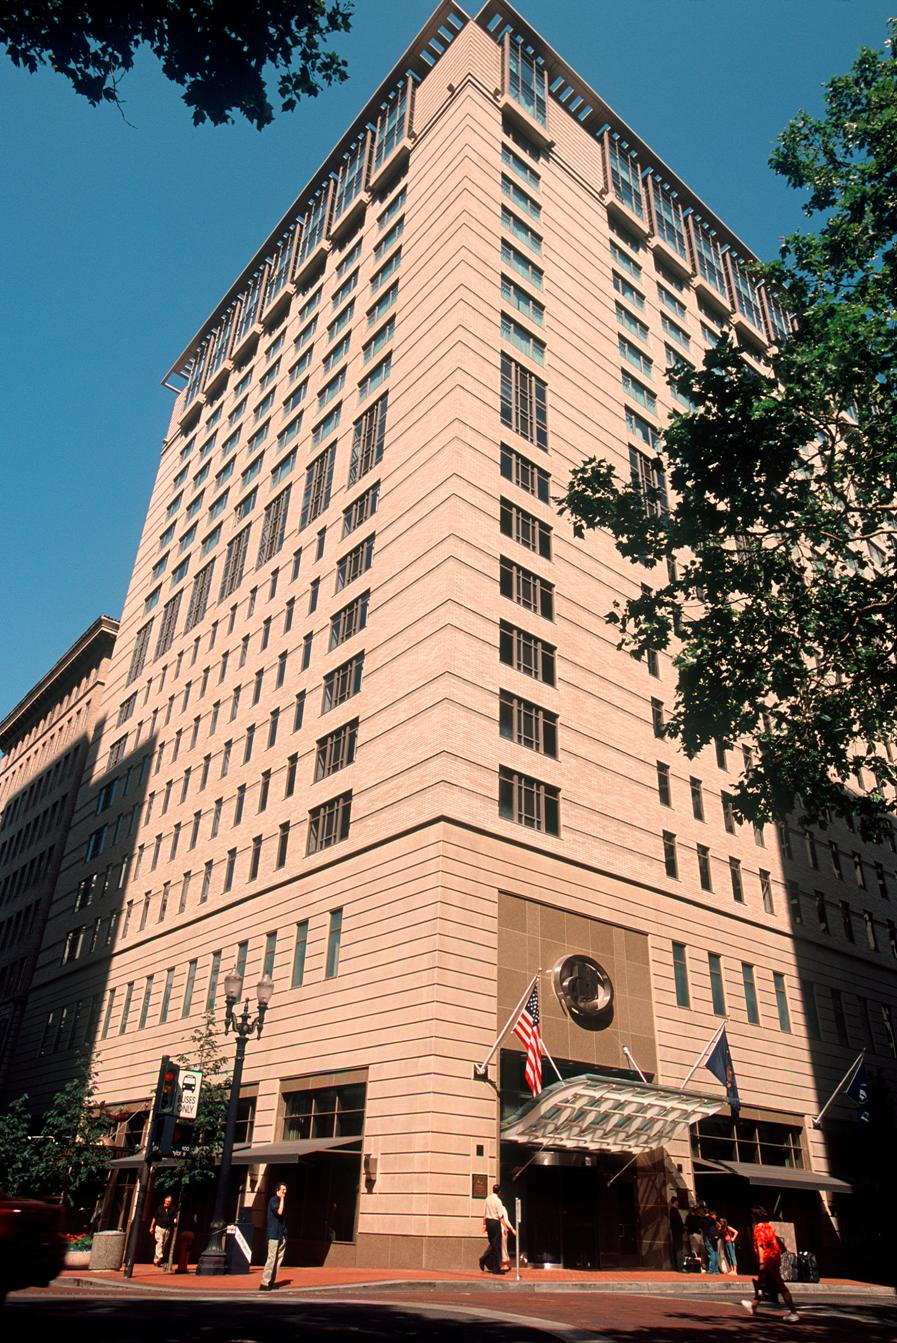 hilton portland downtown coupons near me in portland 8coupons